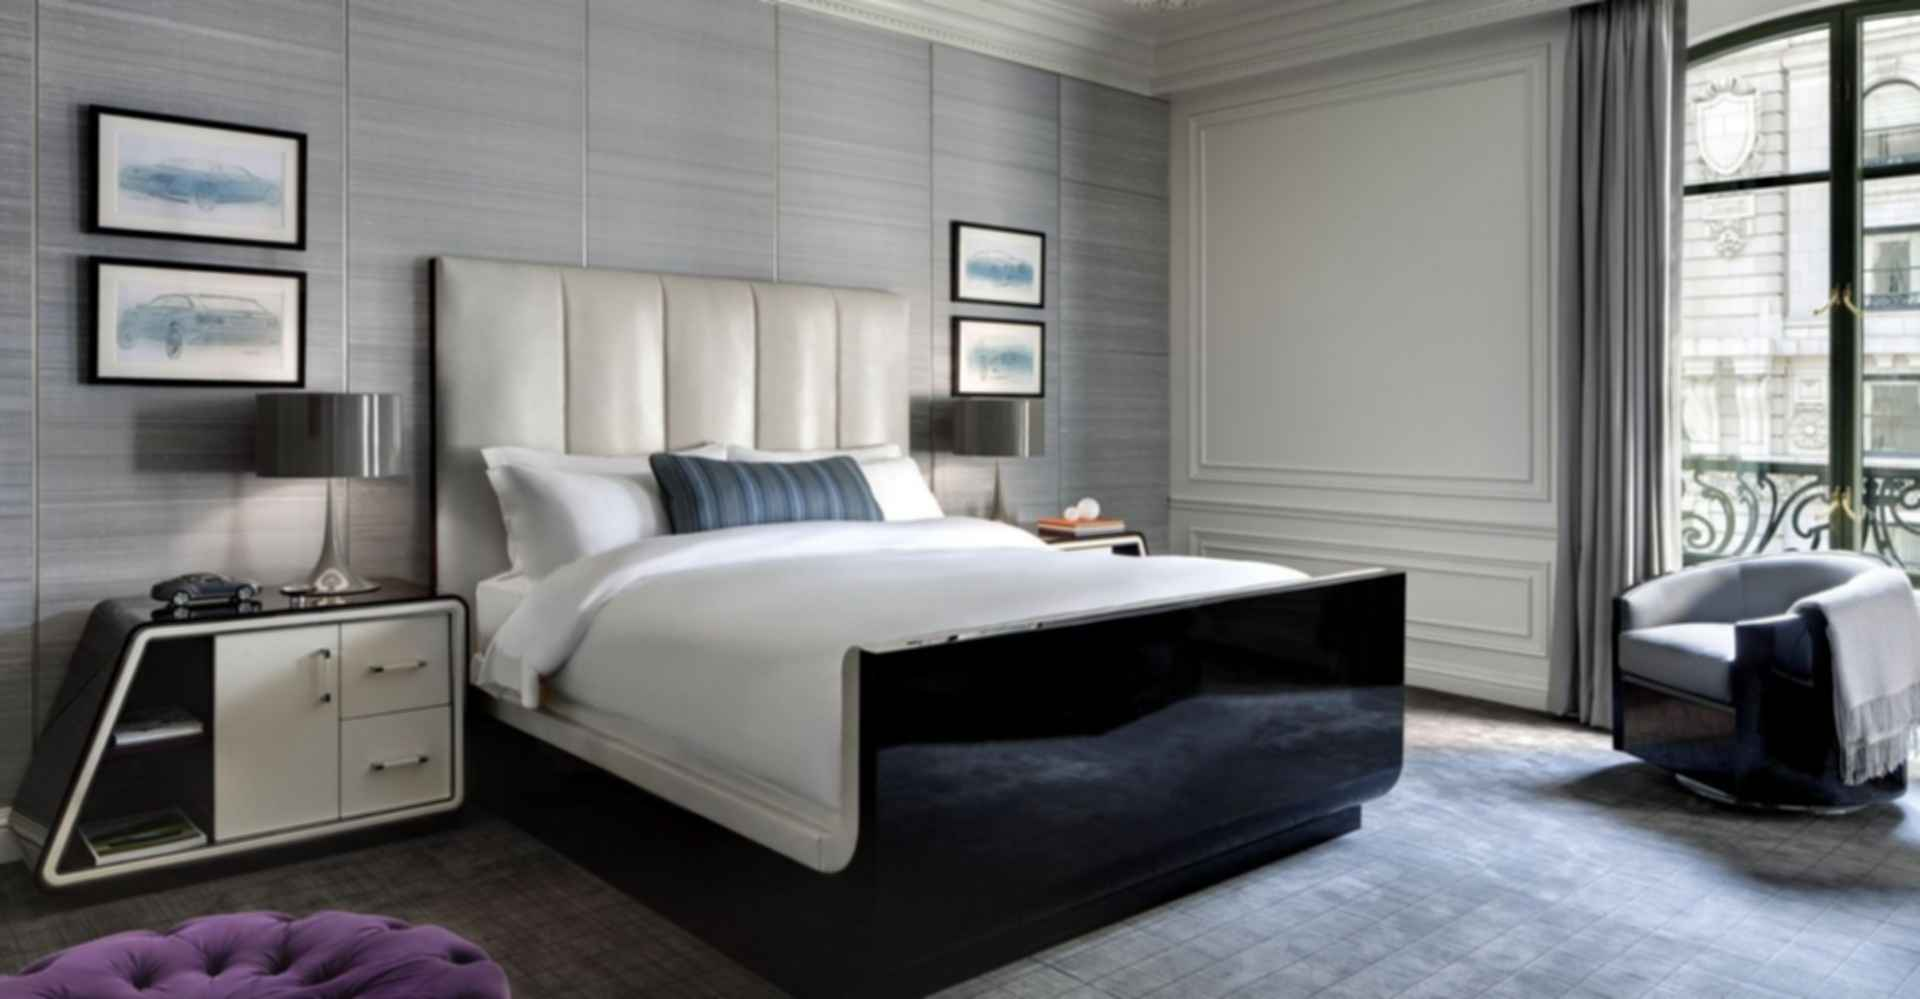 St Regis New York Bentley Suite - Bedroom